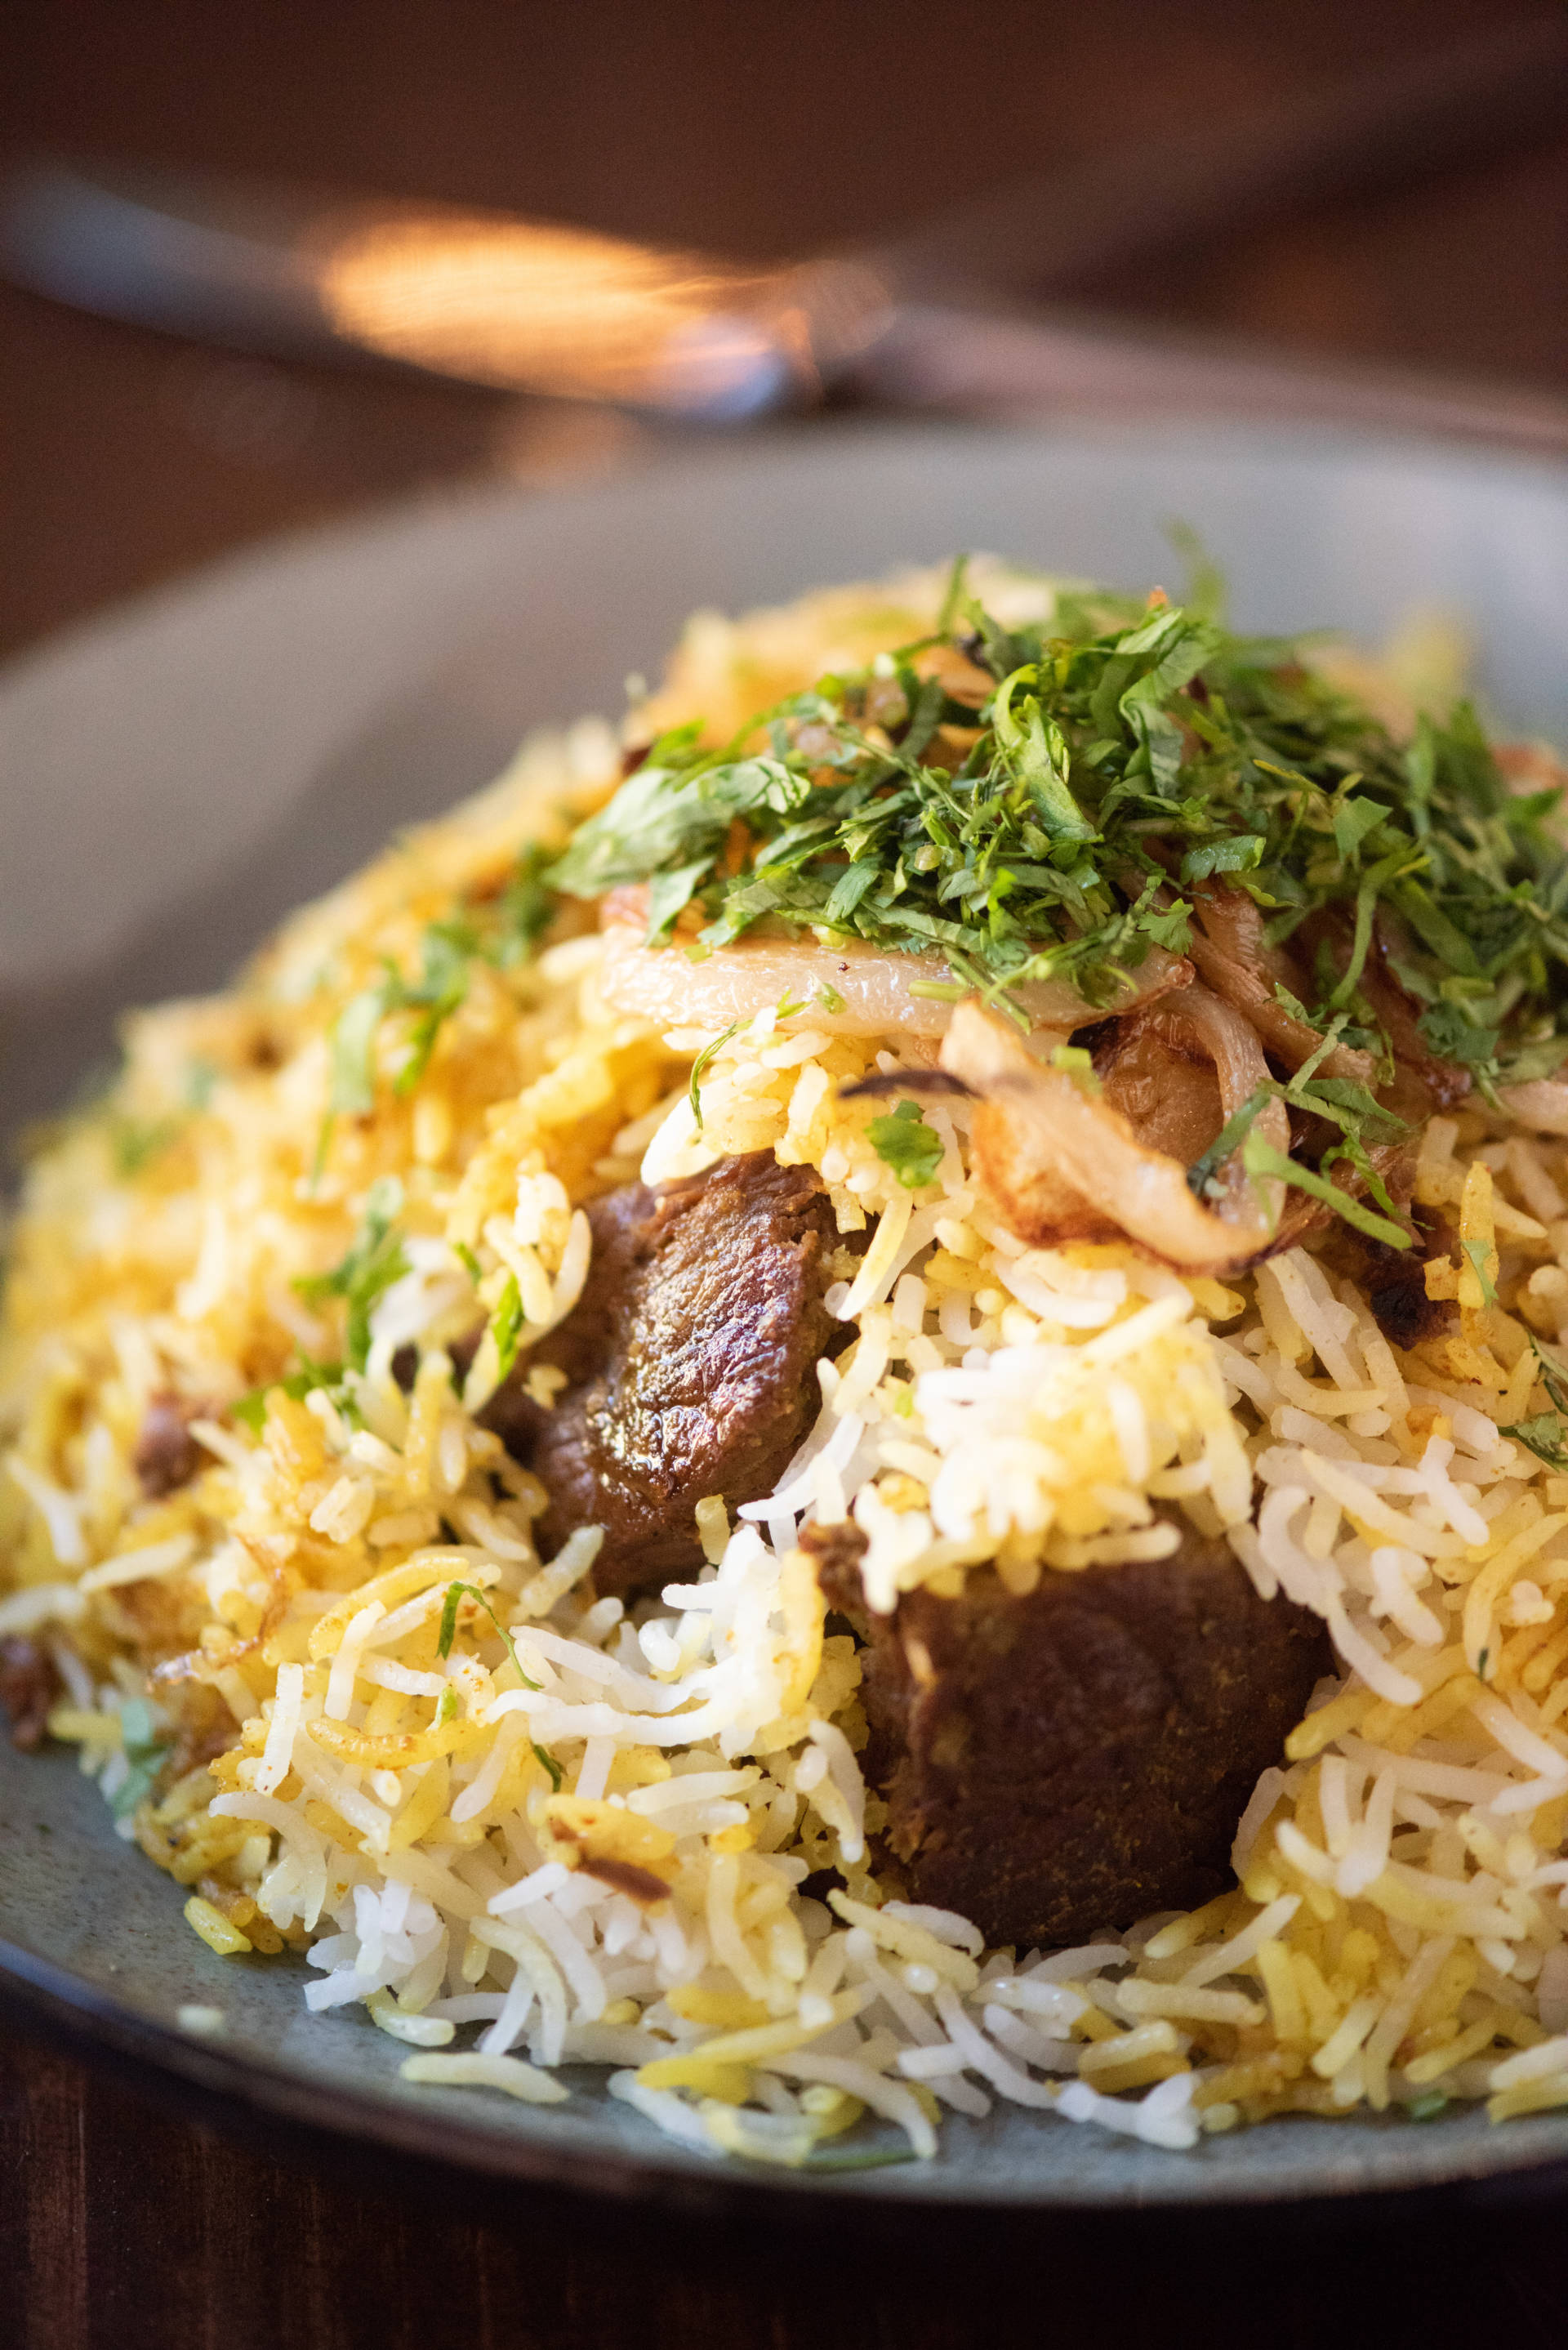 You'll find chef Rupam's famed biryani at Ritu.